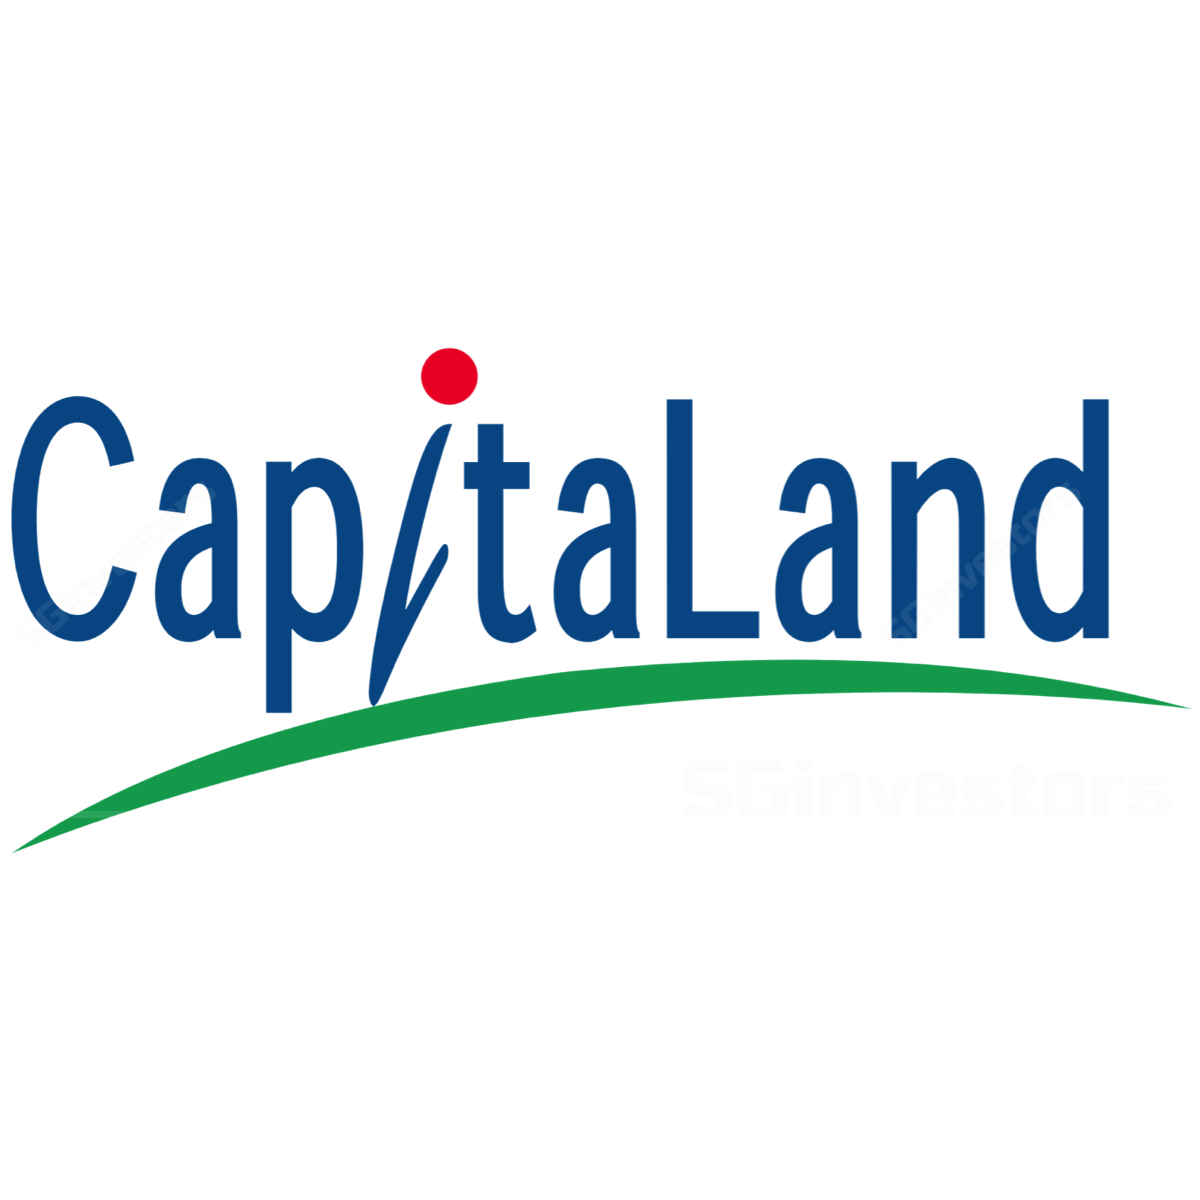 CapitaLand Limited - Phillip Securities 2017-04-03: Period of reckoning when efforts bear fruits